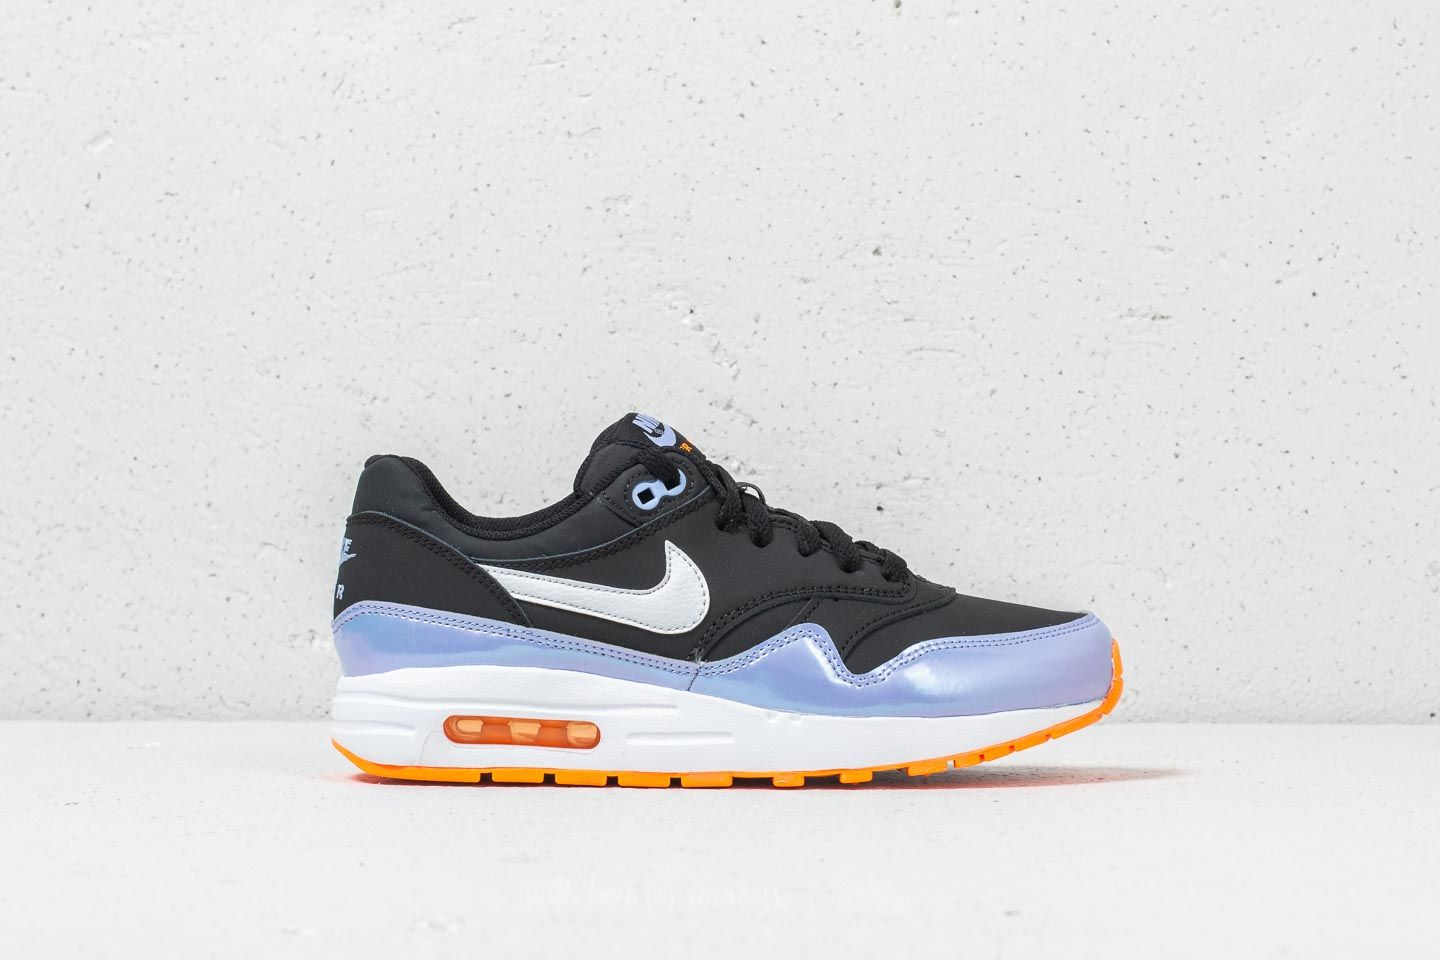 on sale 55f58 f52cb Nike Air Max 1 (GS) Black  White-Twilight Pulse at a great